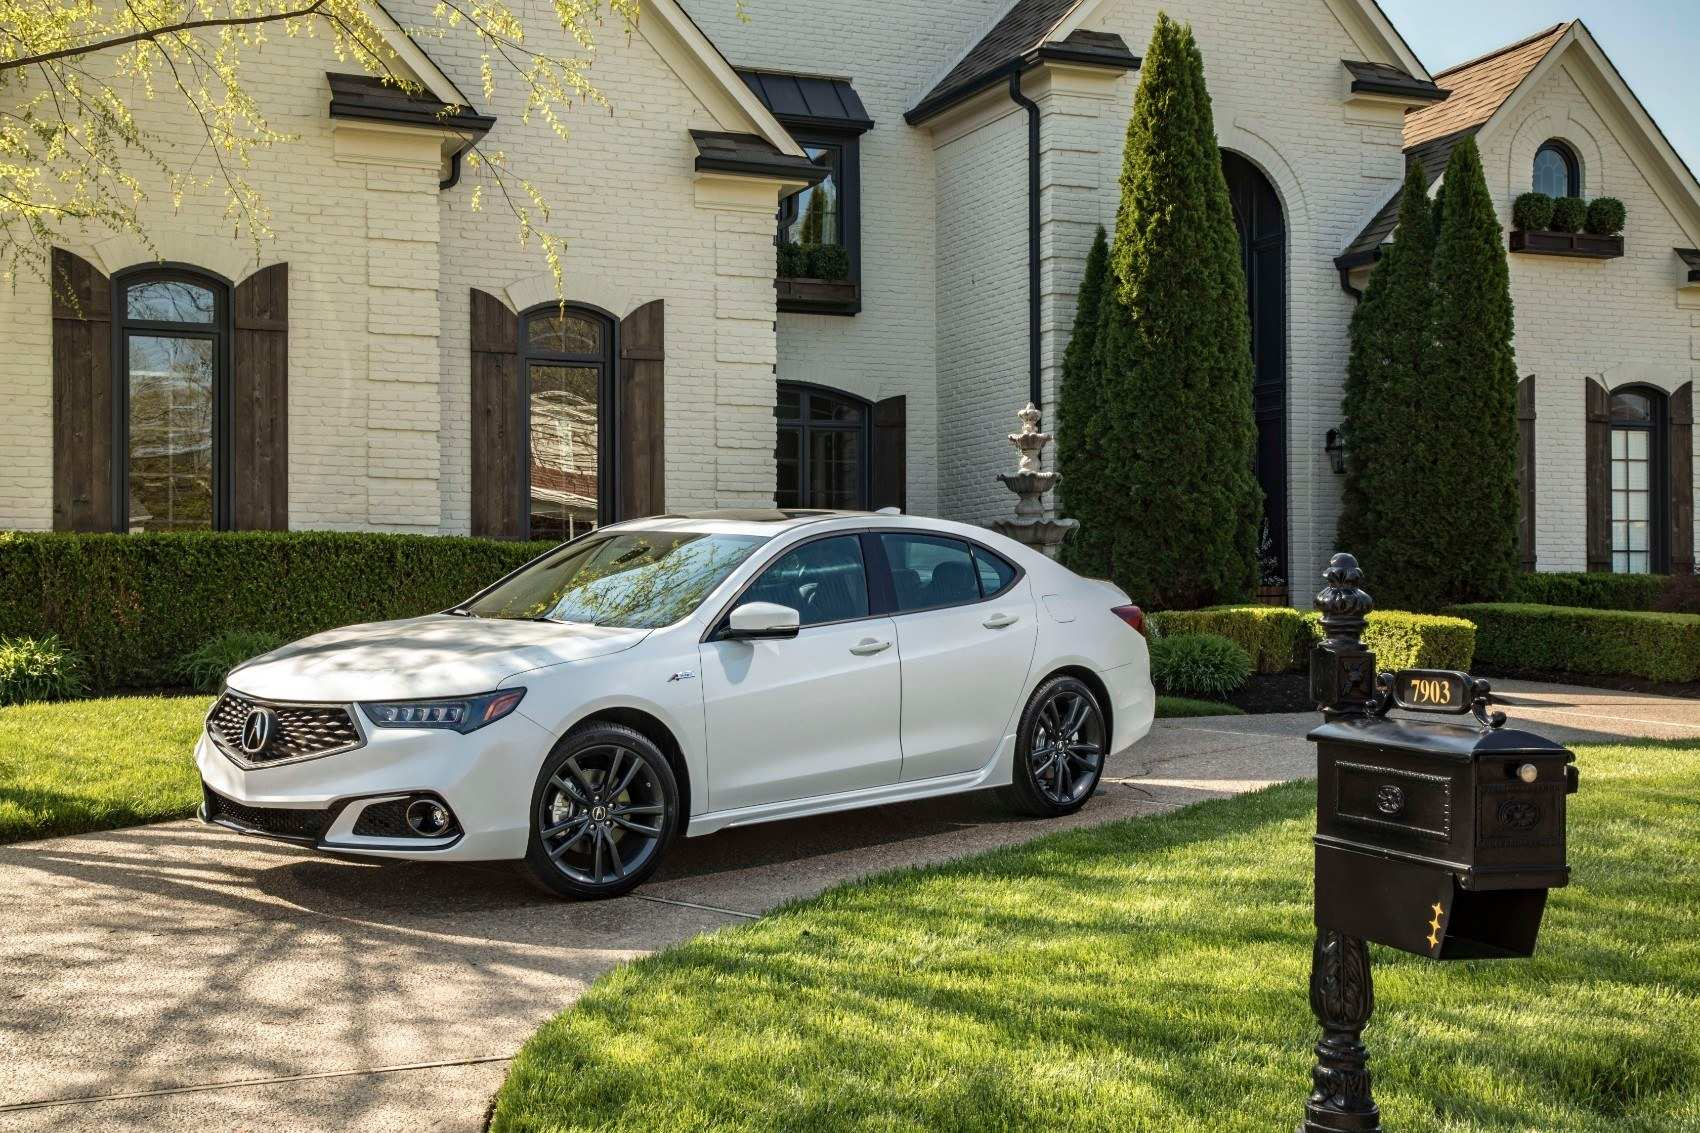 20 Great Release Date For 2020 Acura Tlx Engine for Release Date For 2020 Acura Tlx